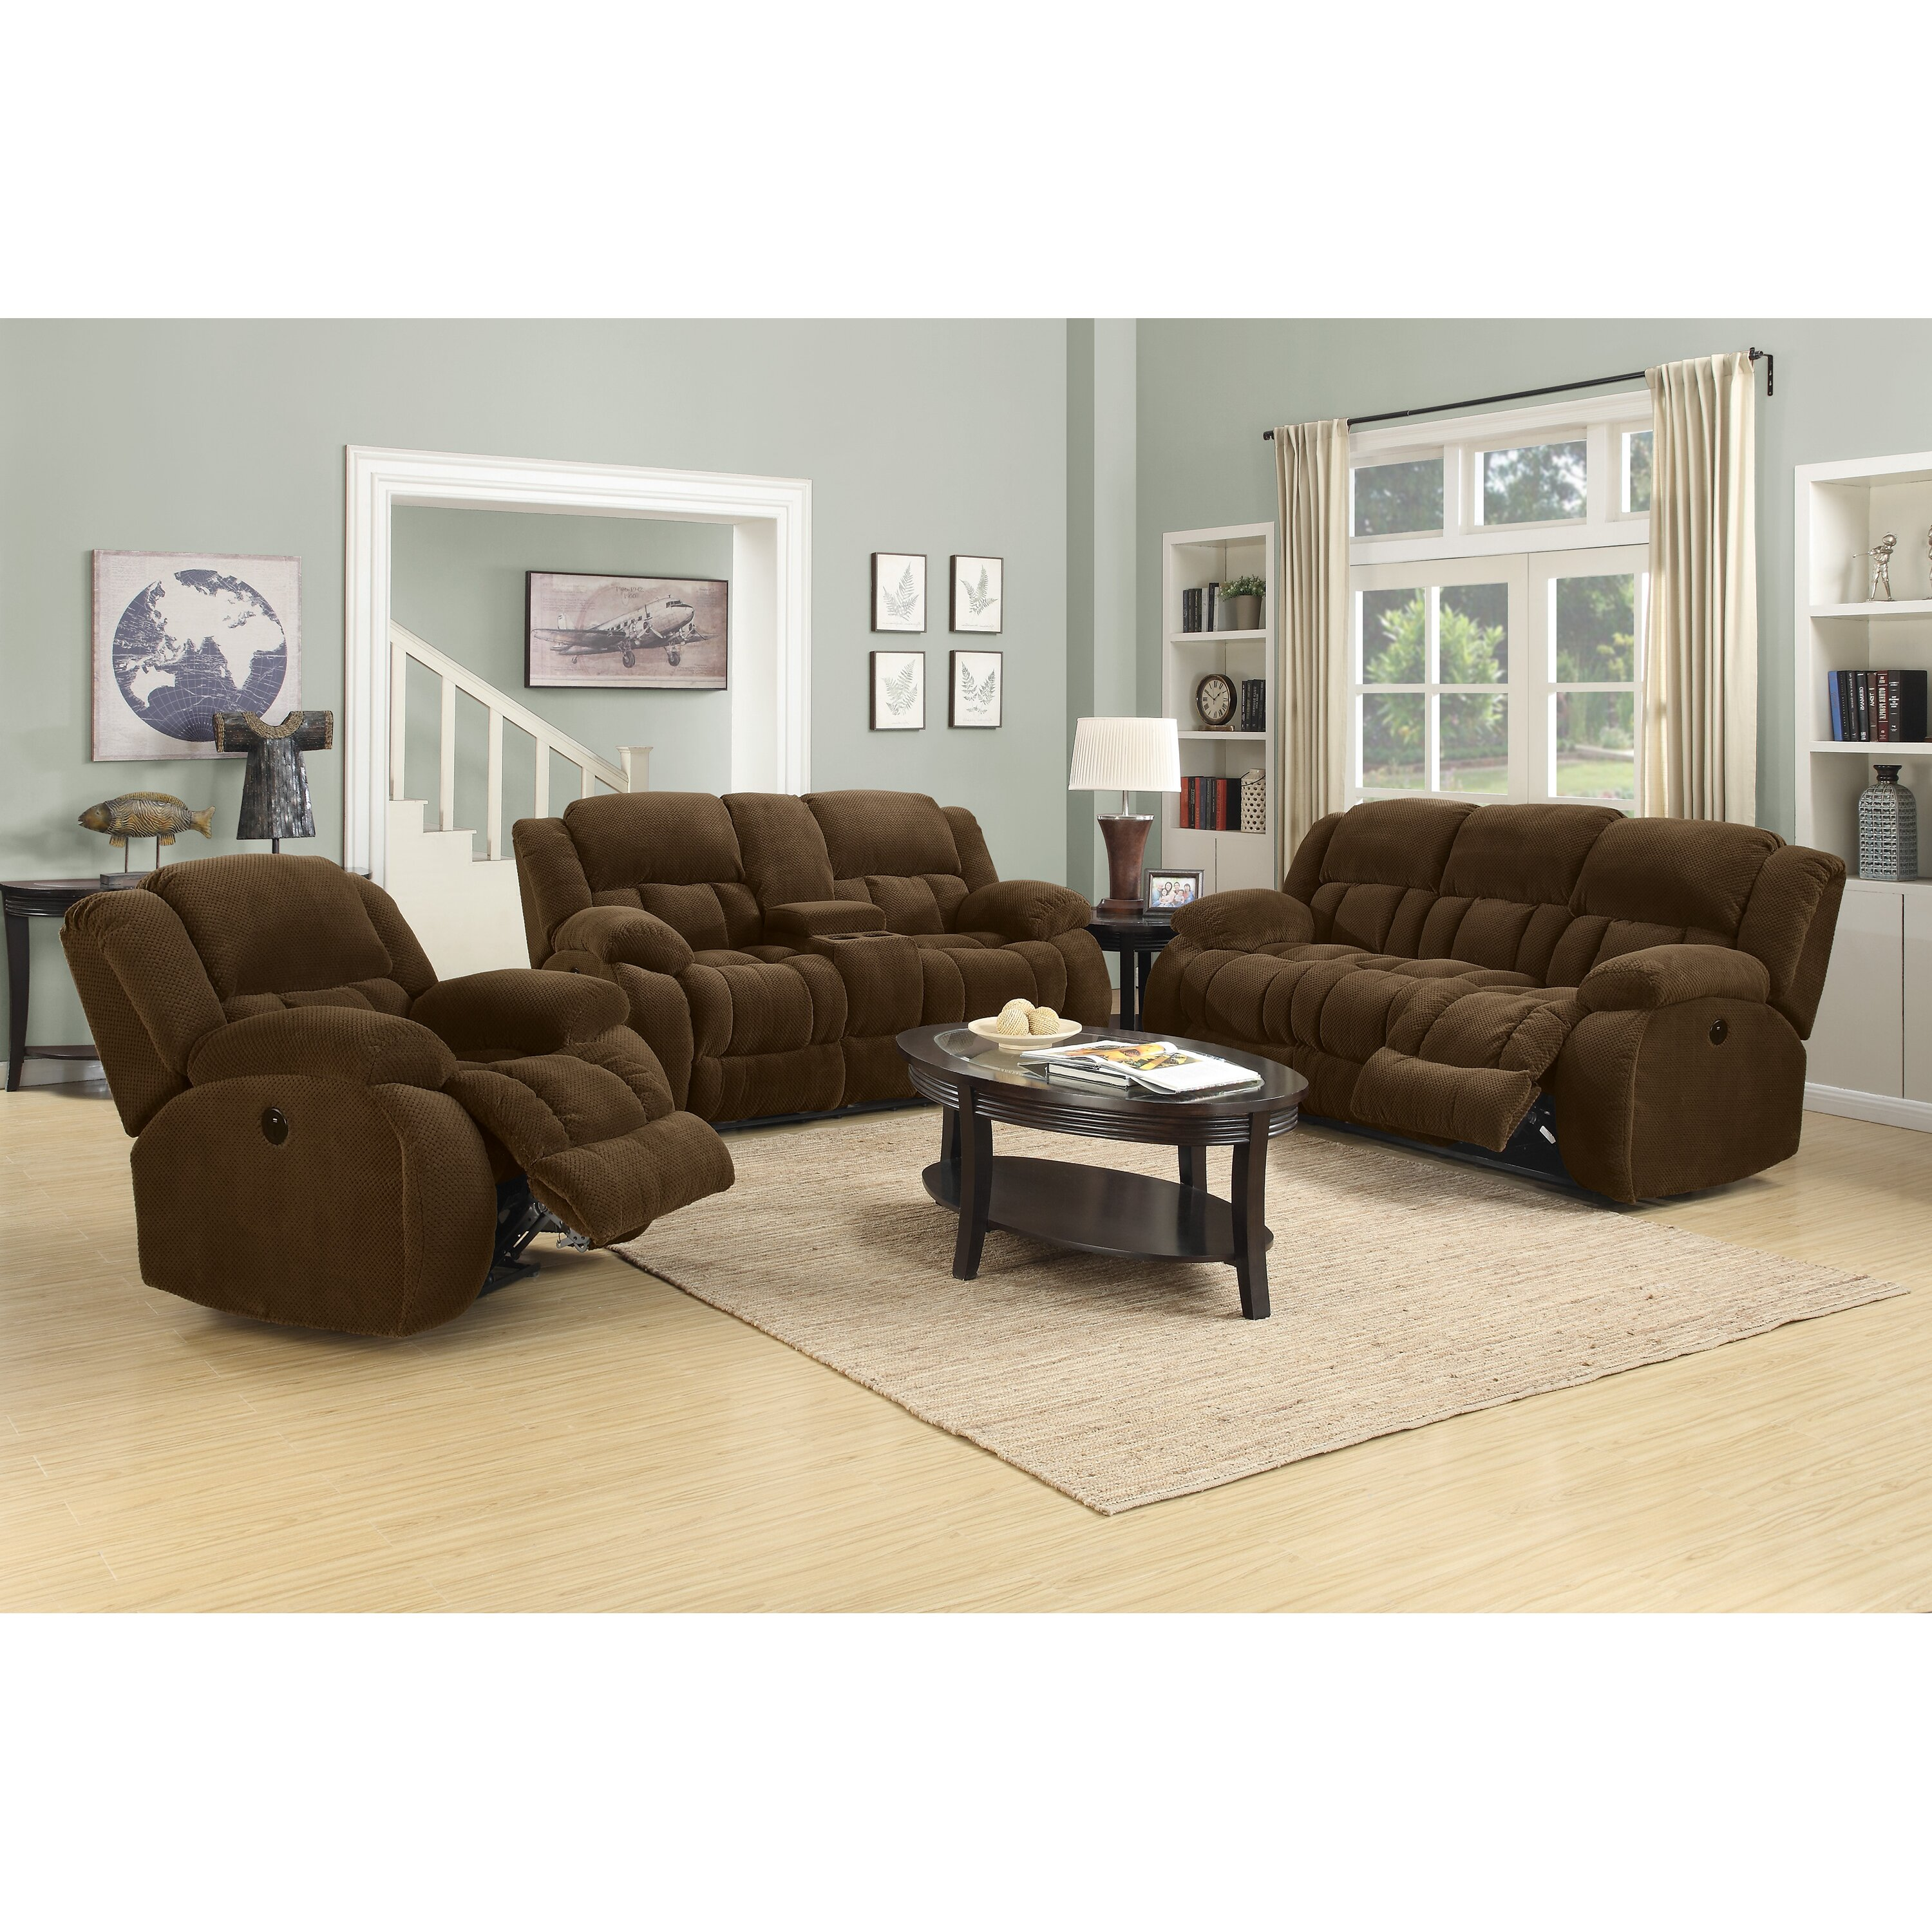 Wildon Home Weissman Living Room Collection Reviews